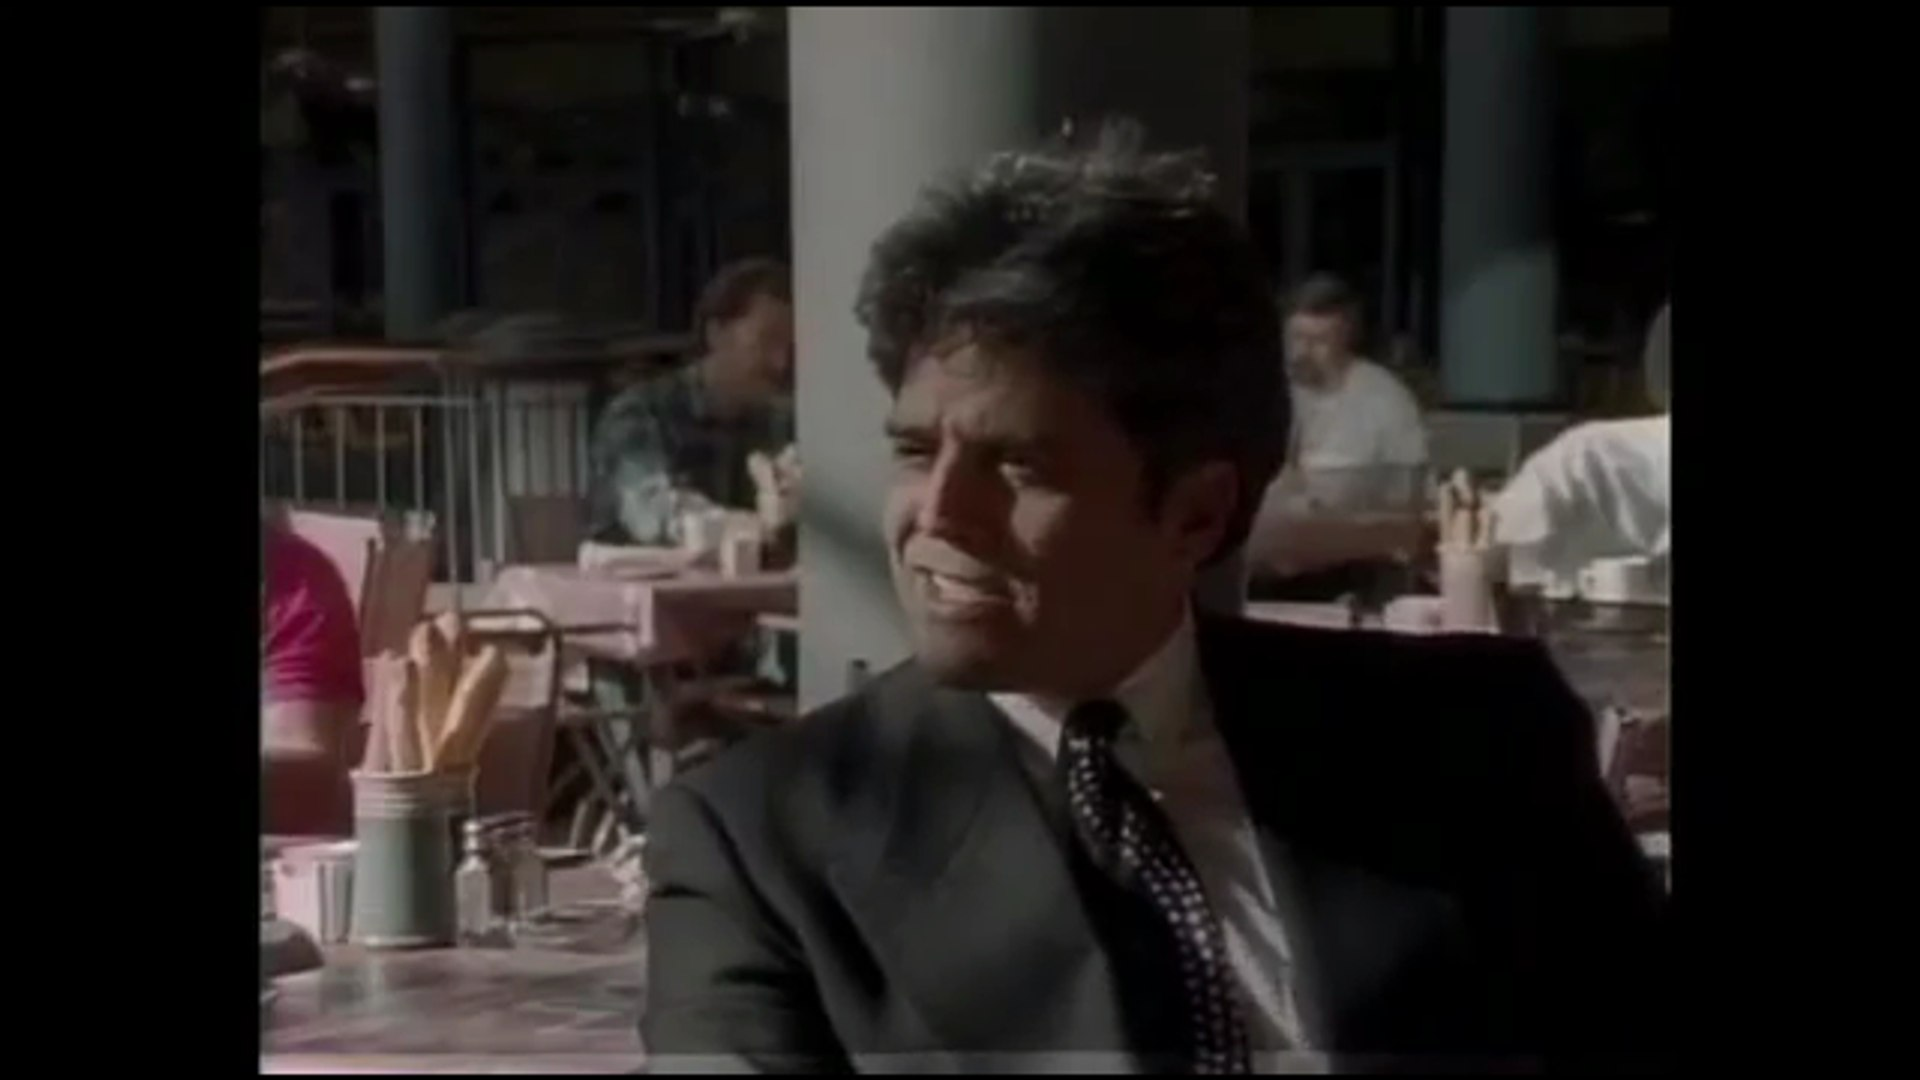 The Sounds Of Silence (1992) -  Erik Estrada, Dana Plato - Trailer (Drama)